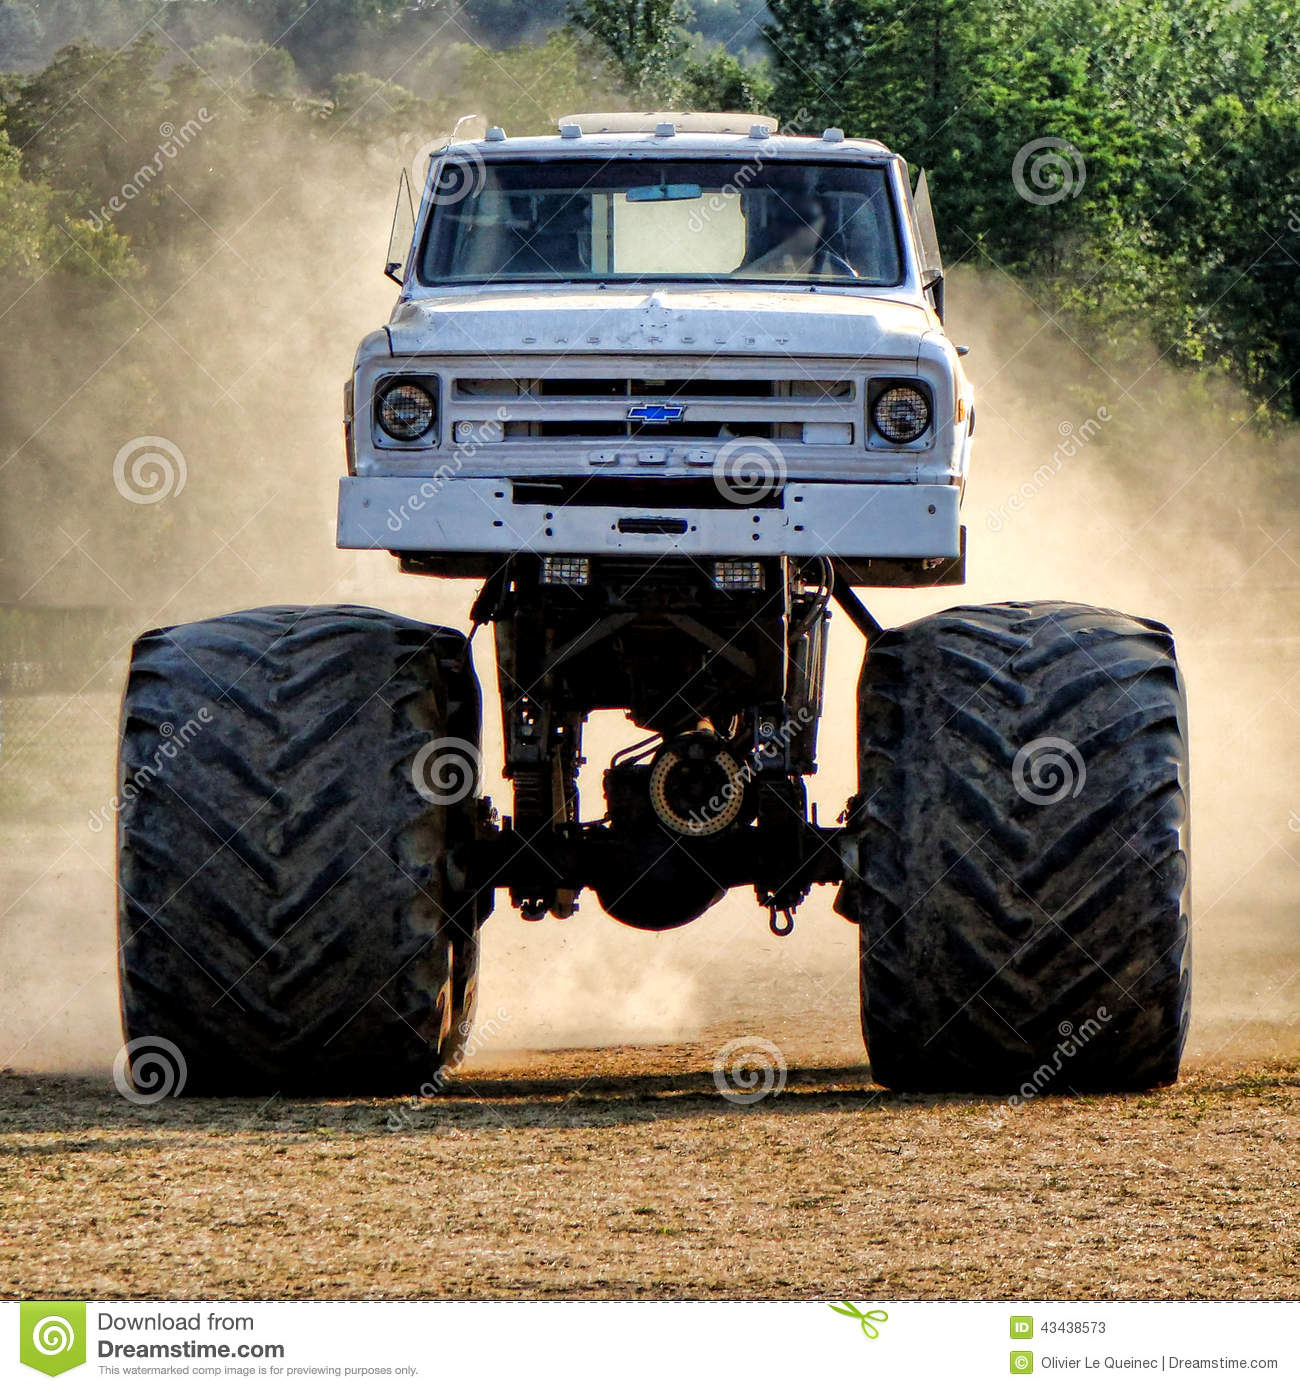 Vintage Chevrolet Monster Truck Racing In Dust Editorial Stock Photo Image Of Monster Pickup 43438573